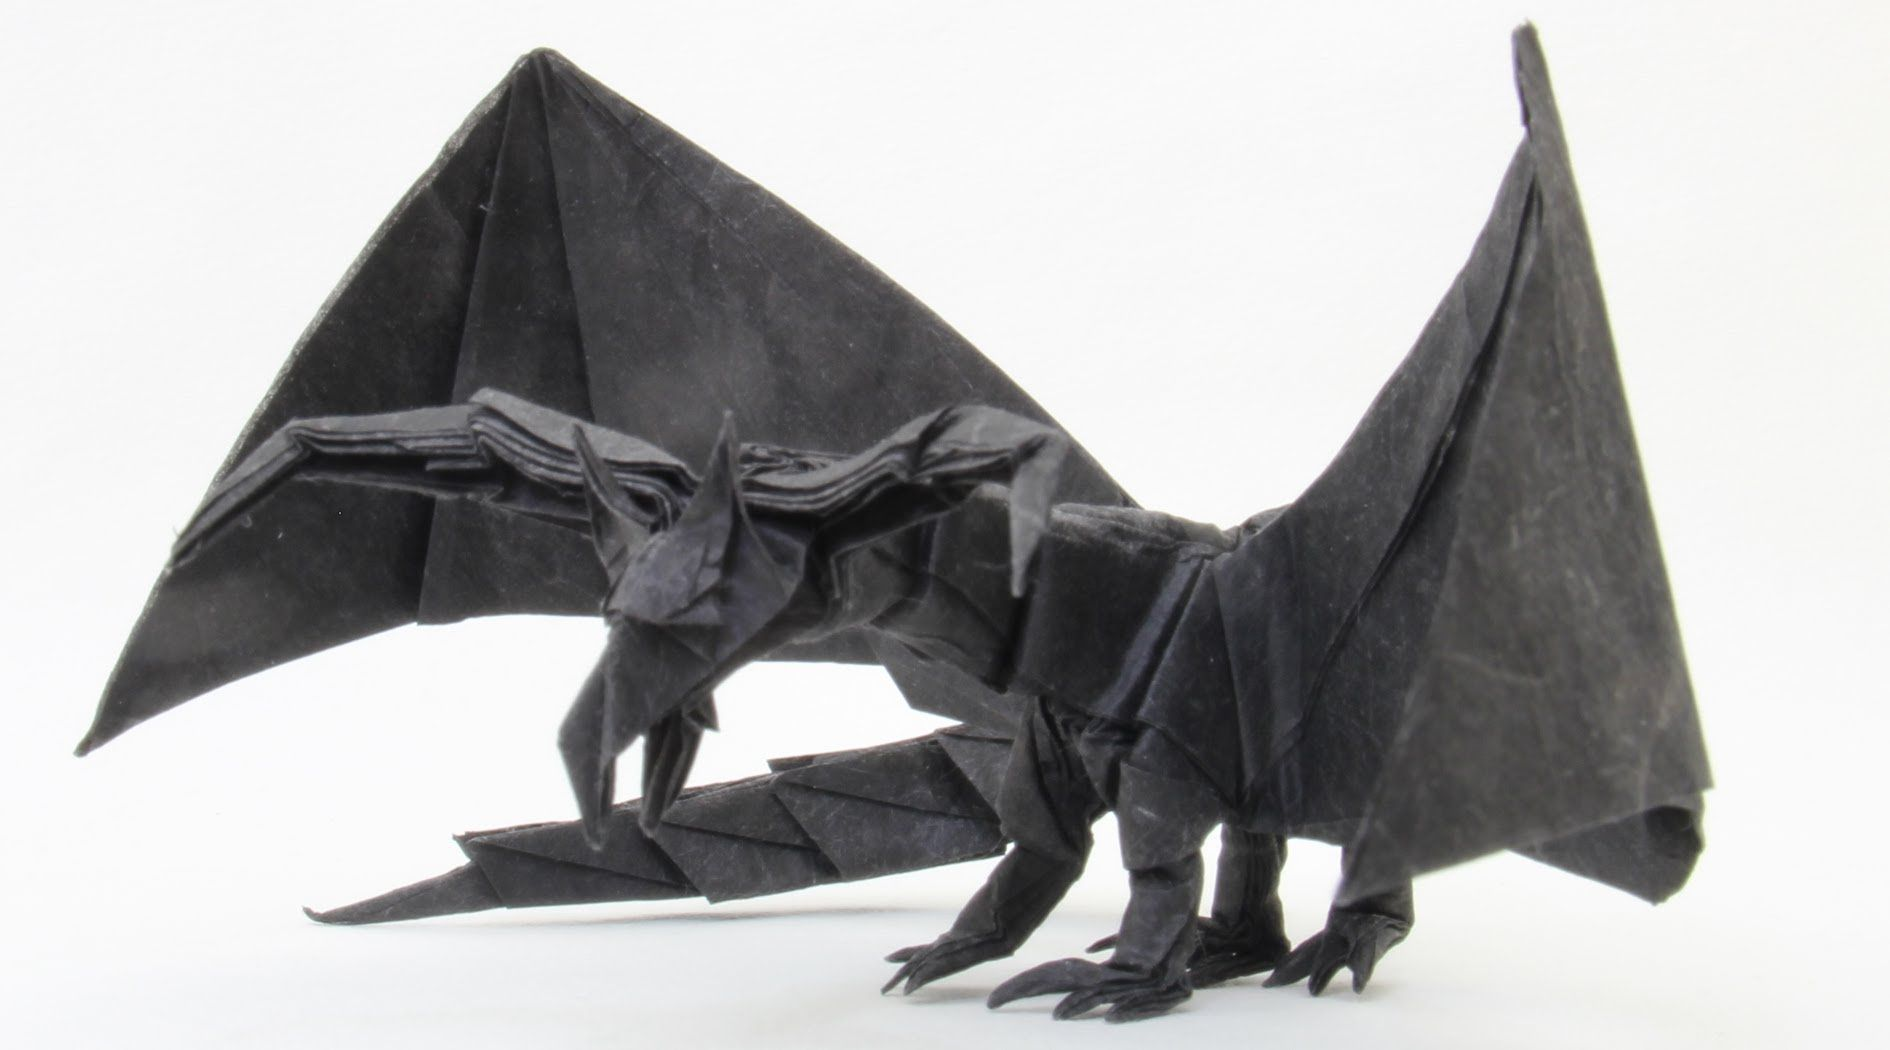 Pin By Bite Me On Origami Pinterest Dragon And Parrotdiagram Barth Dunkan Ecorigami Eagle Lion Elephant Animals Paper Art